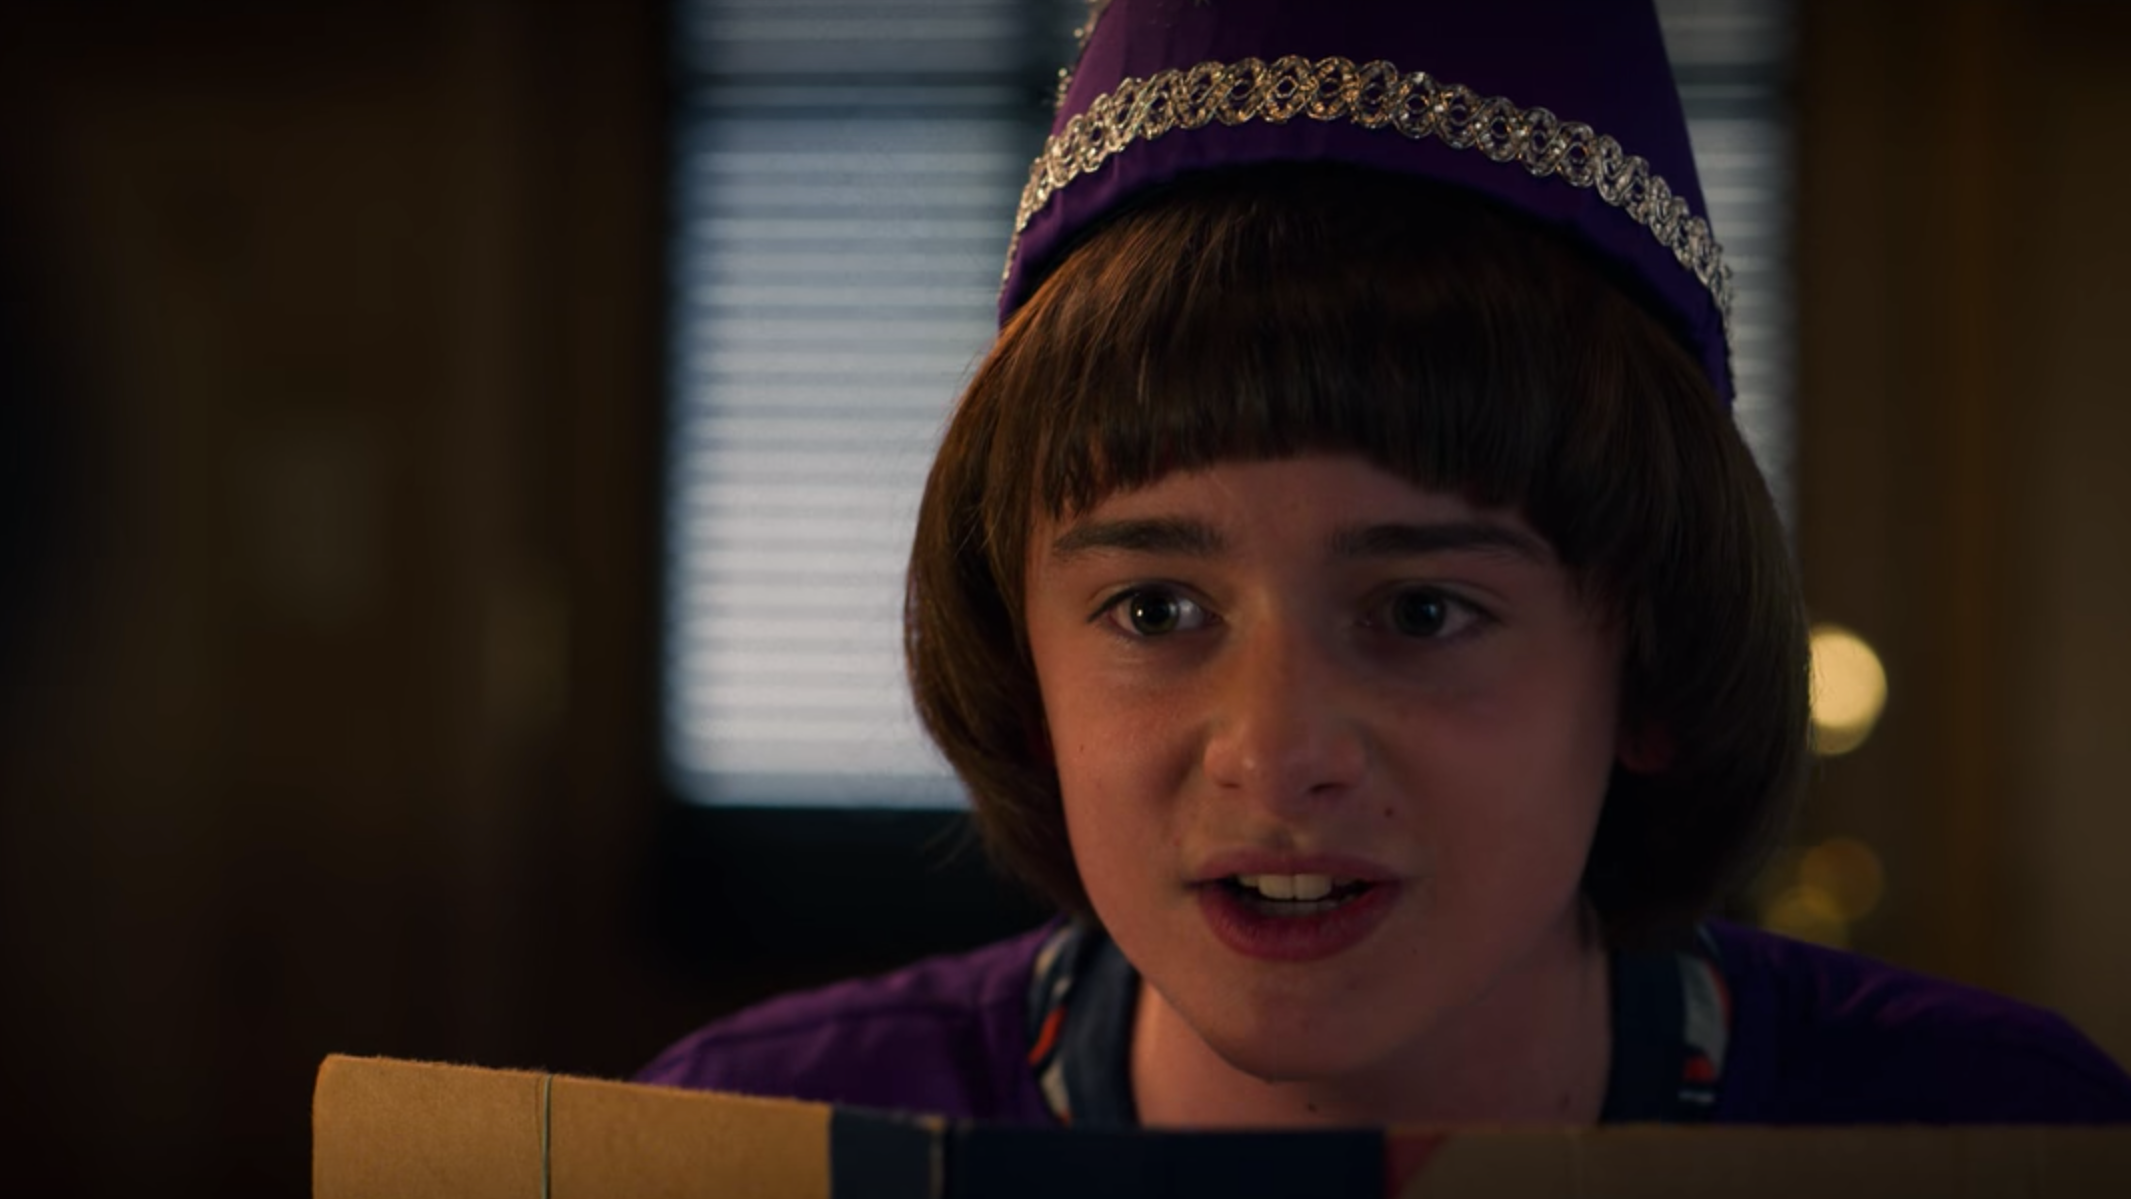 Noah Schnapp From Stranger Things Hates His Character's Haircut